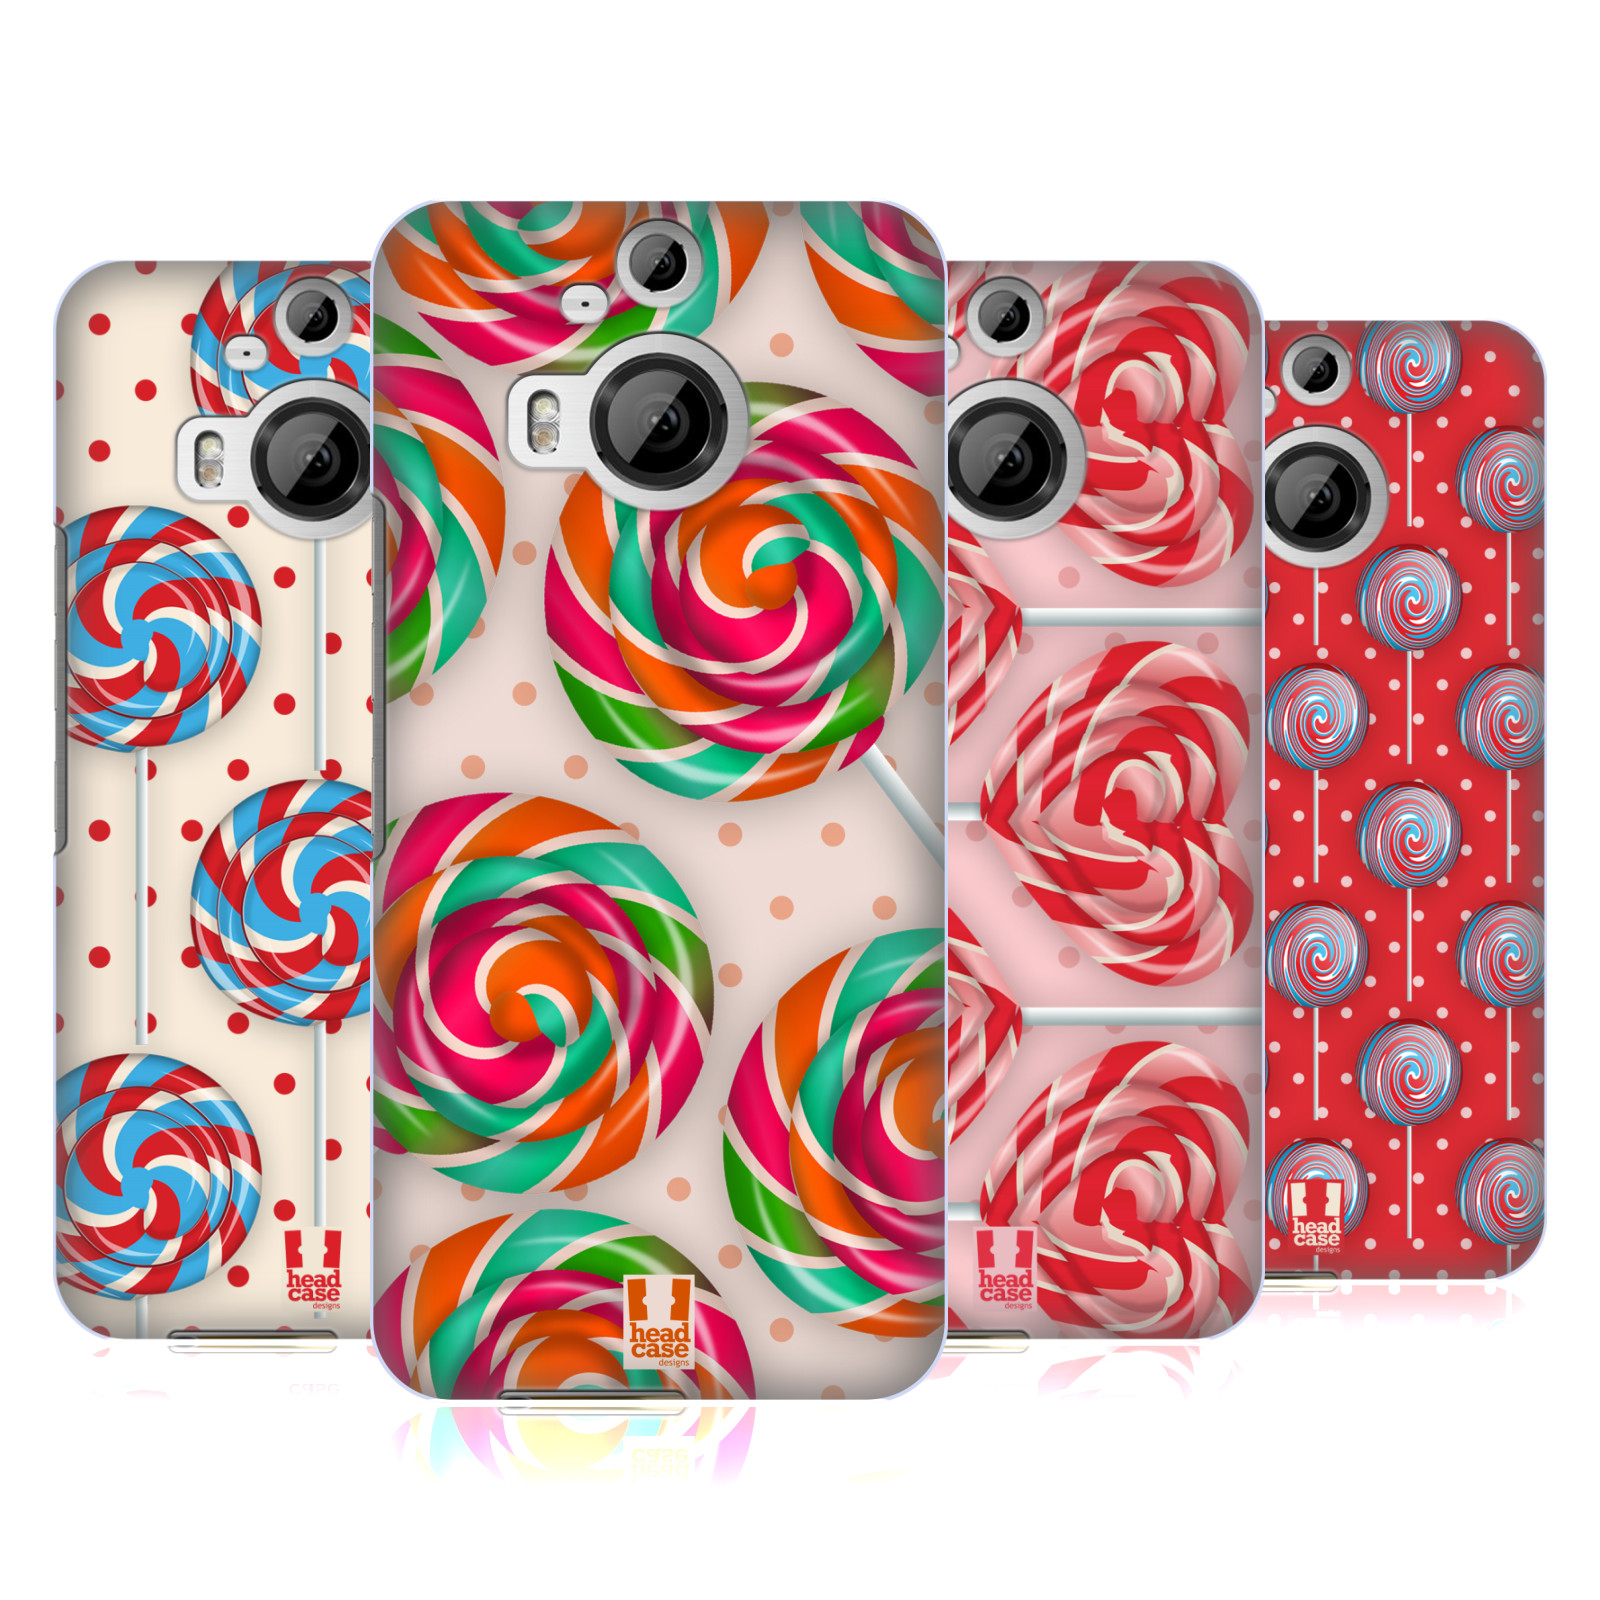 HEAD-CASE-DESIGNS-SPIRAL-LOLLIPOPS-HARD-BACK-CASE-FOR-HTC-PHONES-2